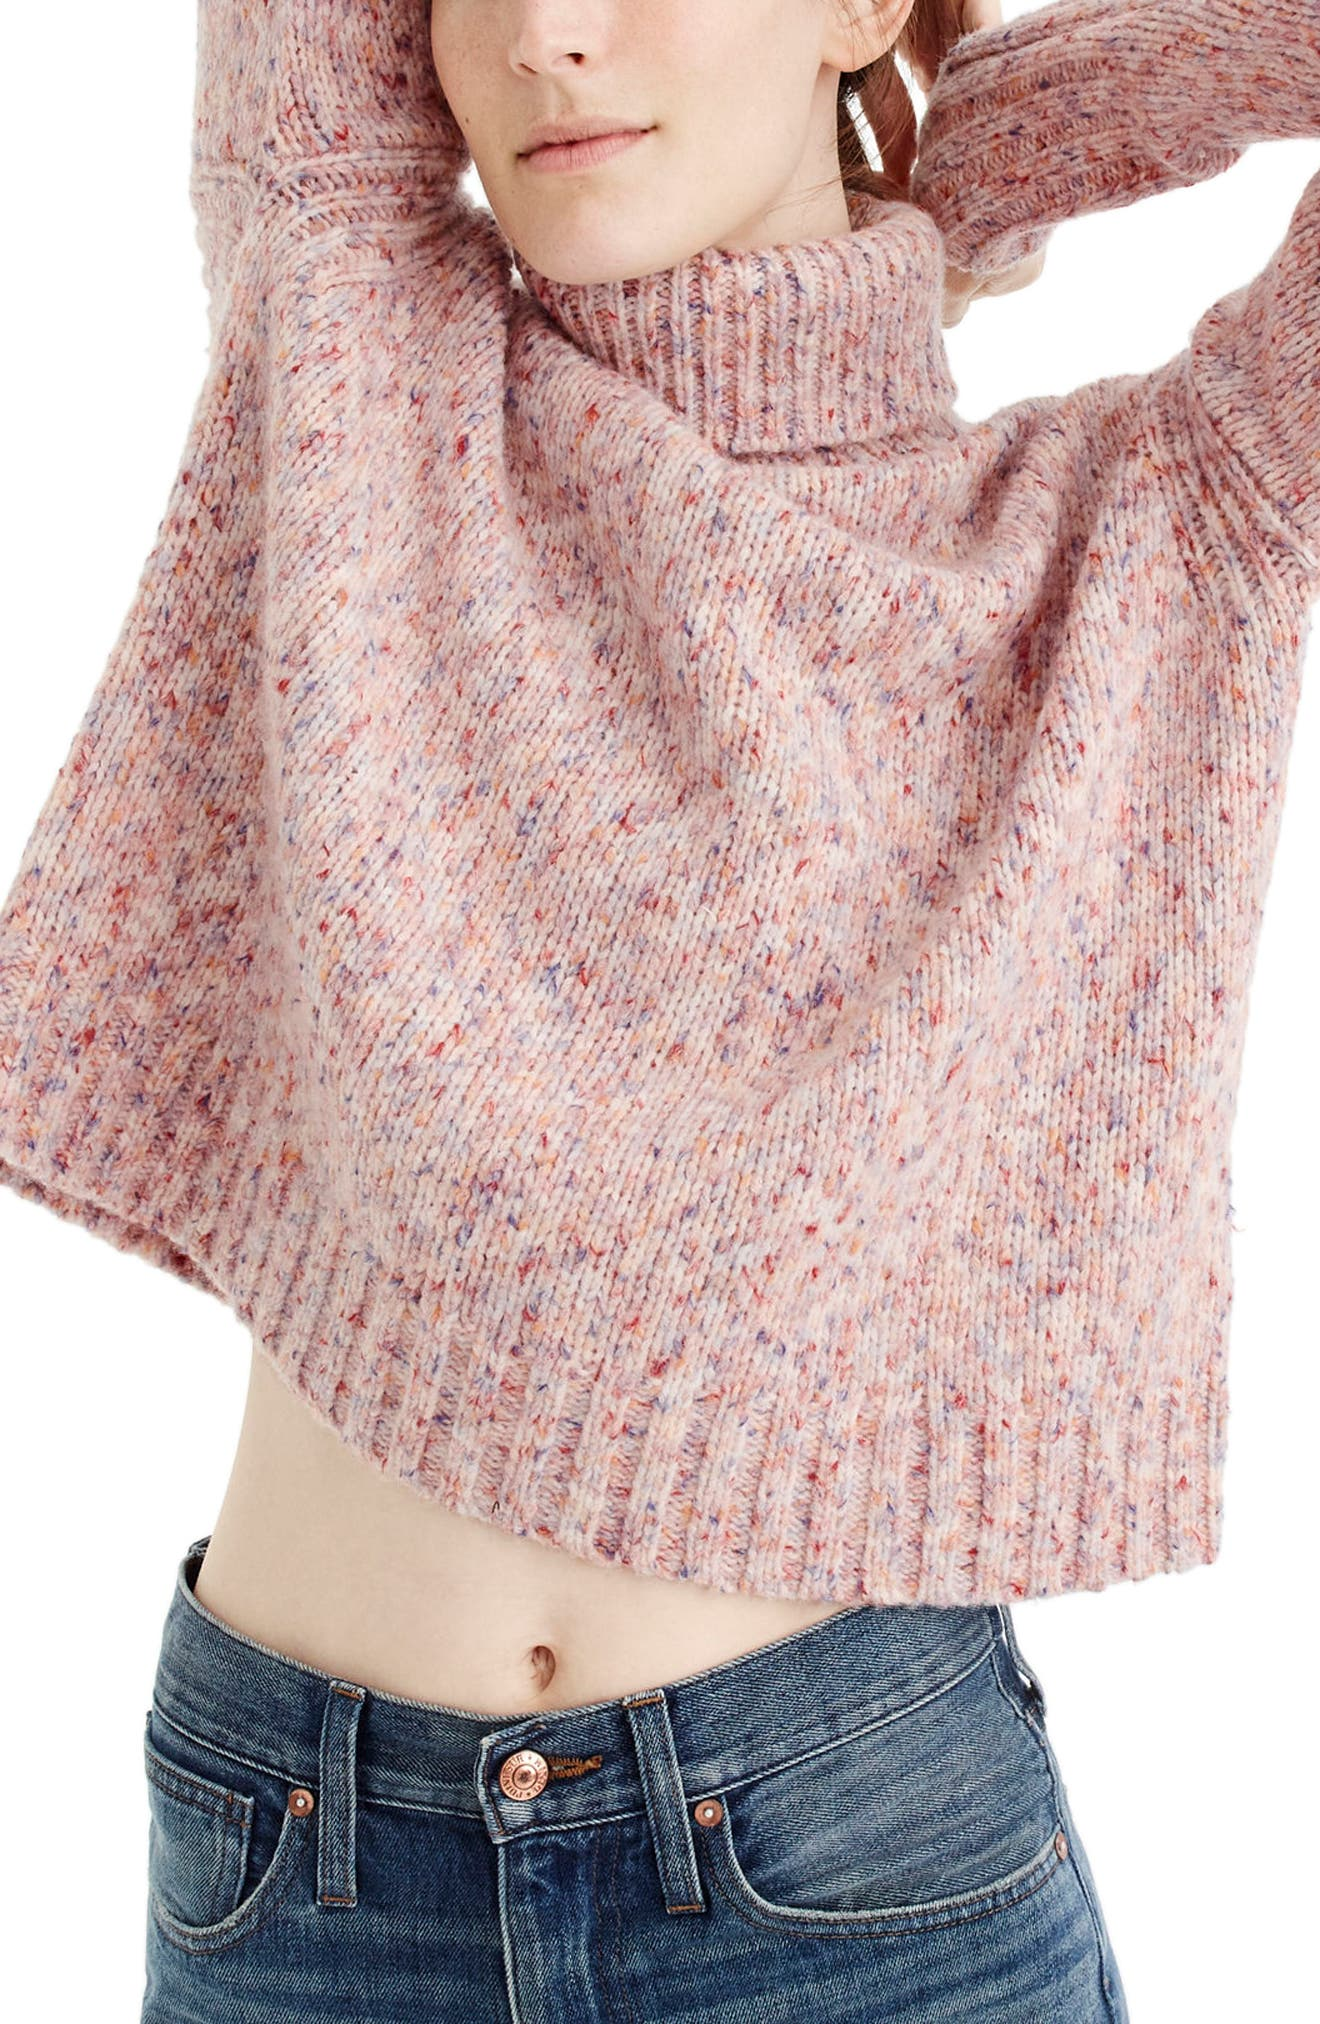 J.Crew Marled Wool Blend Turtleneck Sweater,                         Main,                         color, Marled Confetti